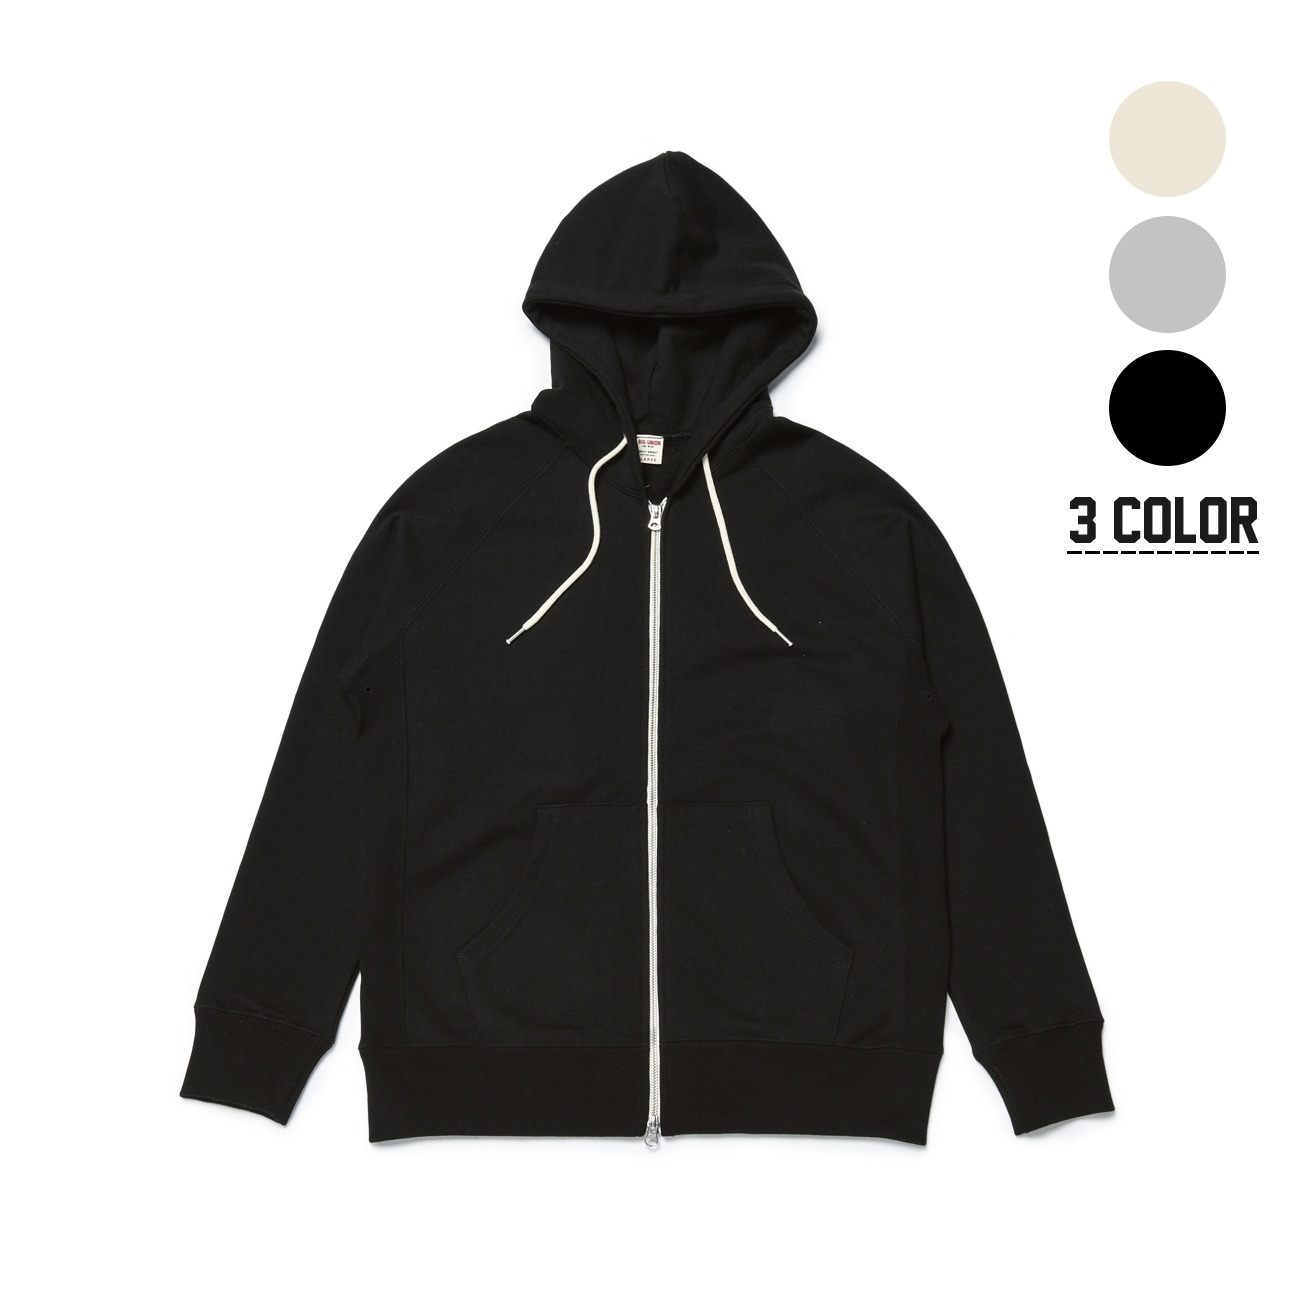 20FW 89 Zip Up Hood [3 Color]